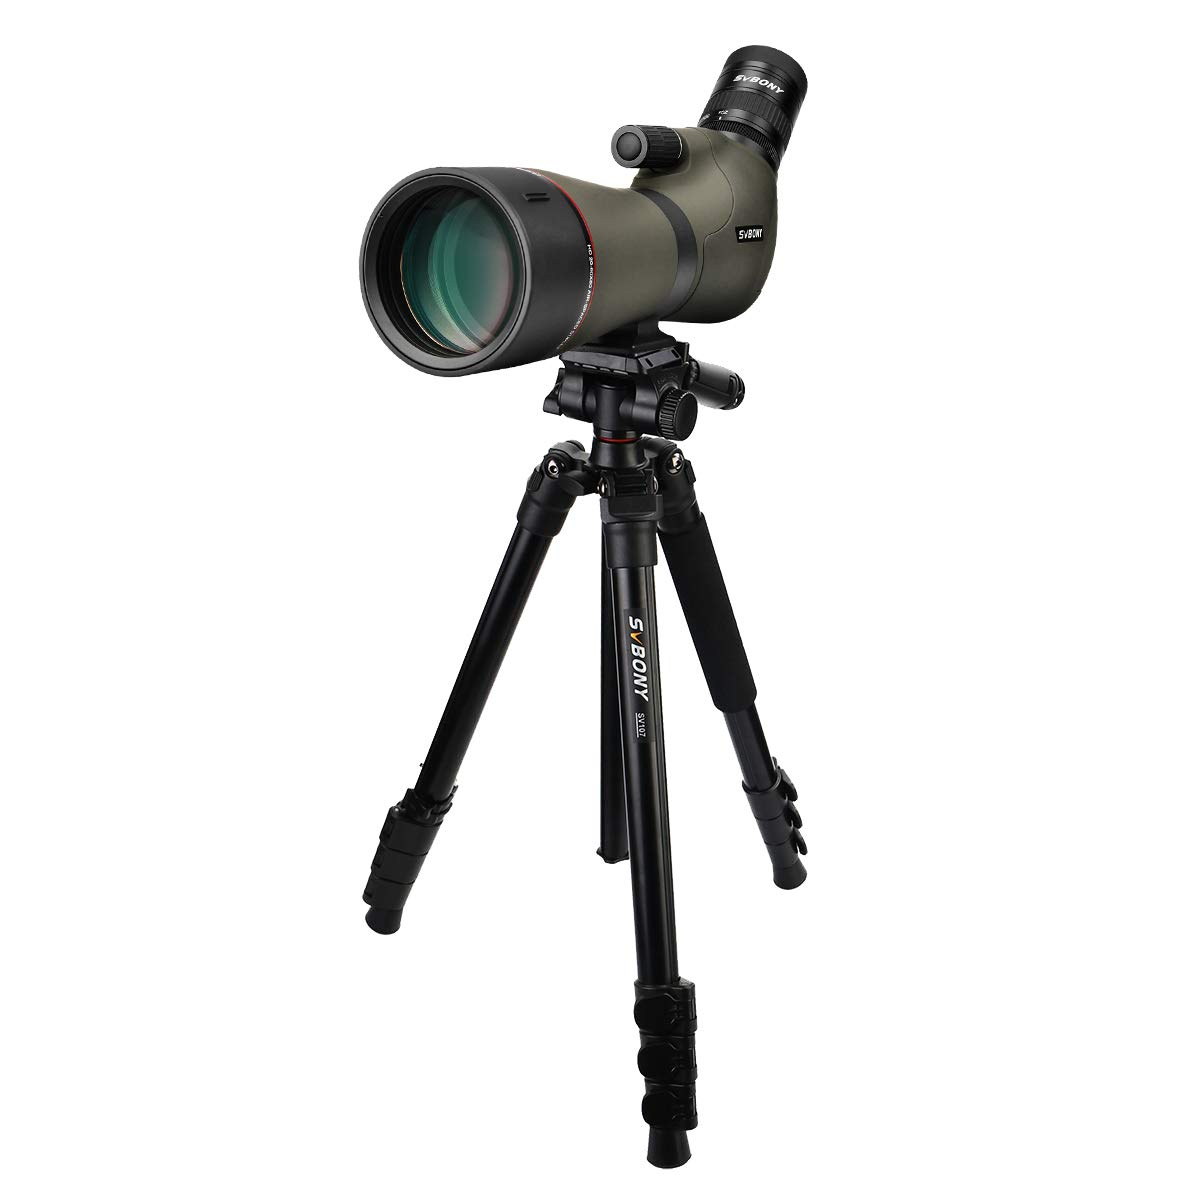 SVBONY SV46 Spotting Scope HD Dual Focus IPX7 Waterproof 20-60x80 Long Range Angled Telescope for Bird Watching Hunting Shooting Archery with Case (with Multifunction Tripod) by SVBONY